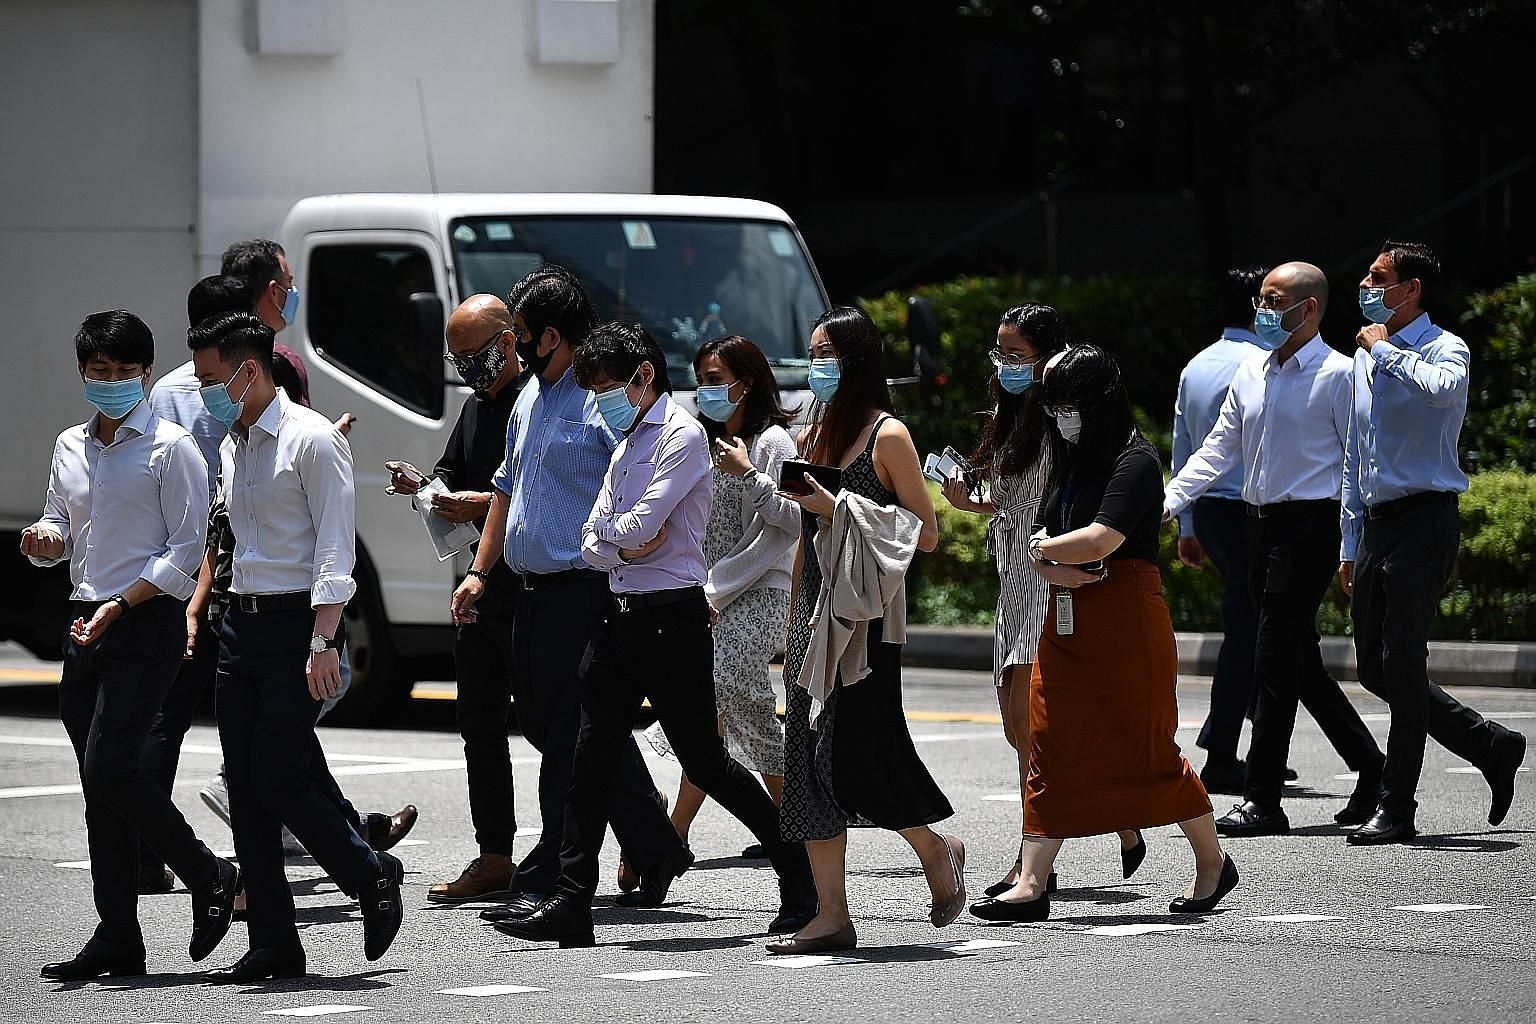 Singapore's rules constrain the inflow of foreigners at the lower end, said Transport Minister Ong Ye Kung, who is a Monetary Authority of Singapore board member. This means a larger share of foreigners tend to be earning higher wages and consequentl